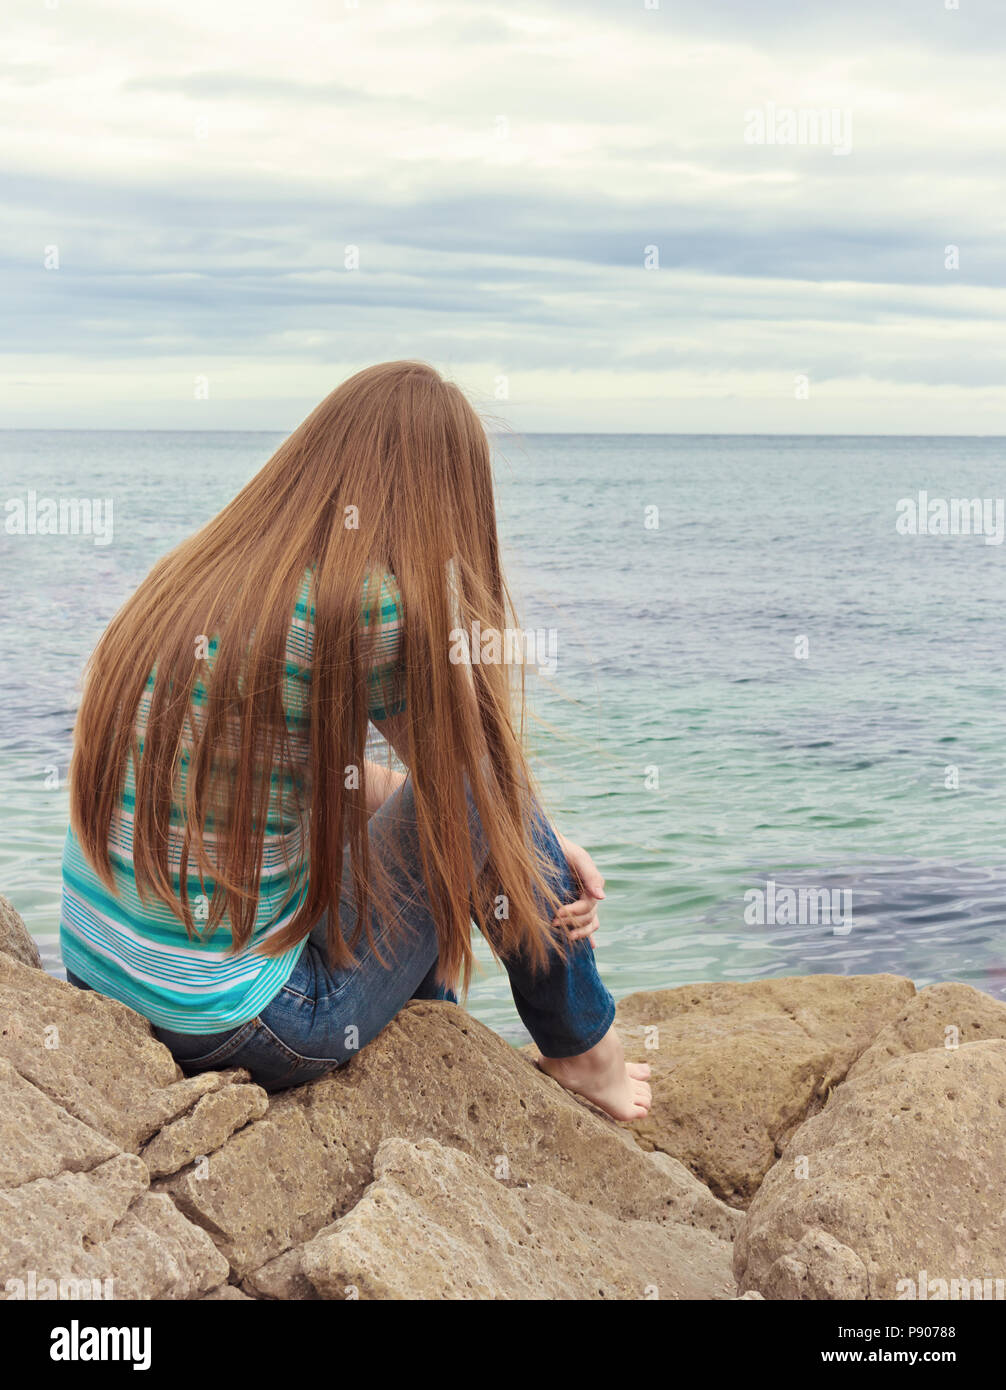 sad girl sitting lonely woman is sad stock photo 212062040 alamy